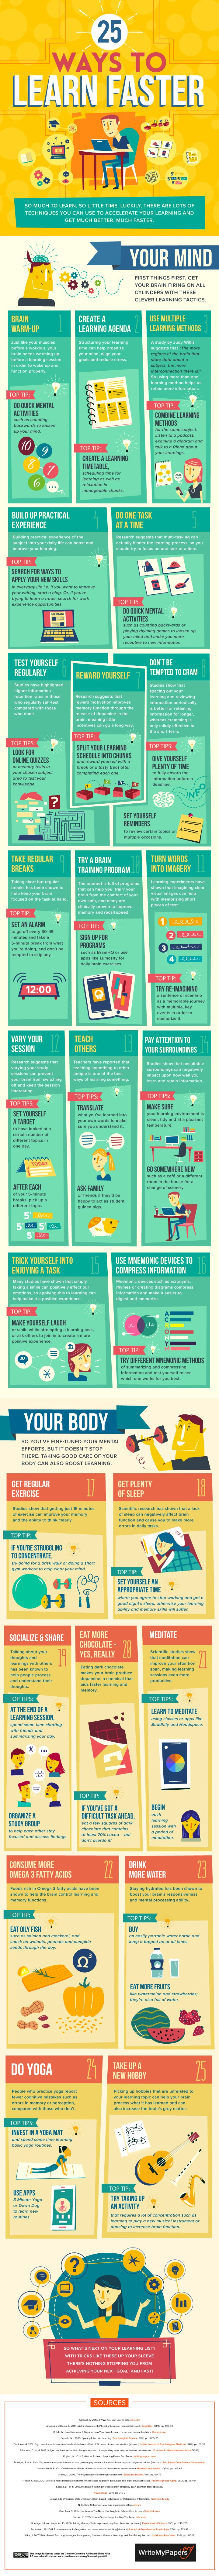 learn faster infographic